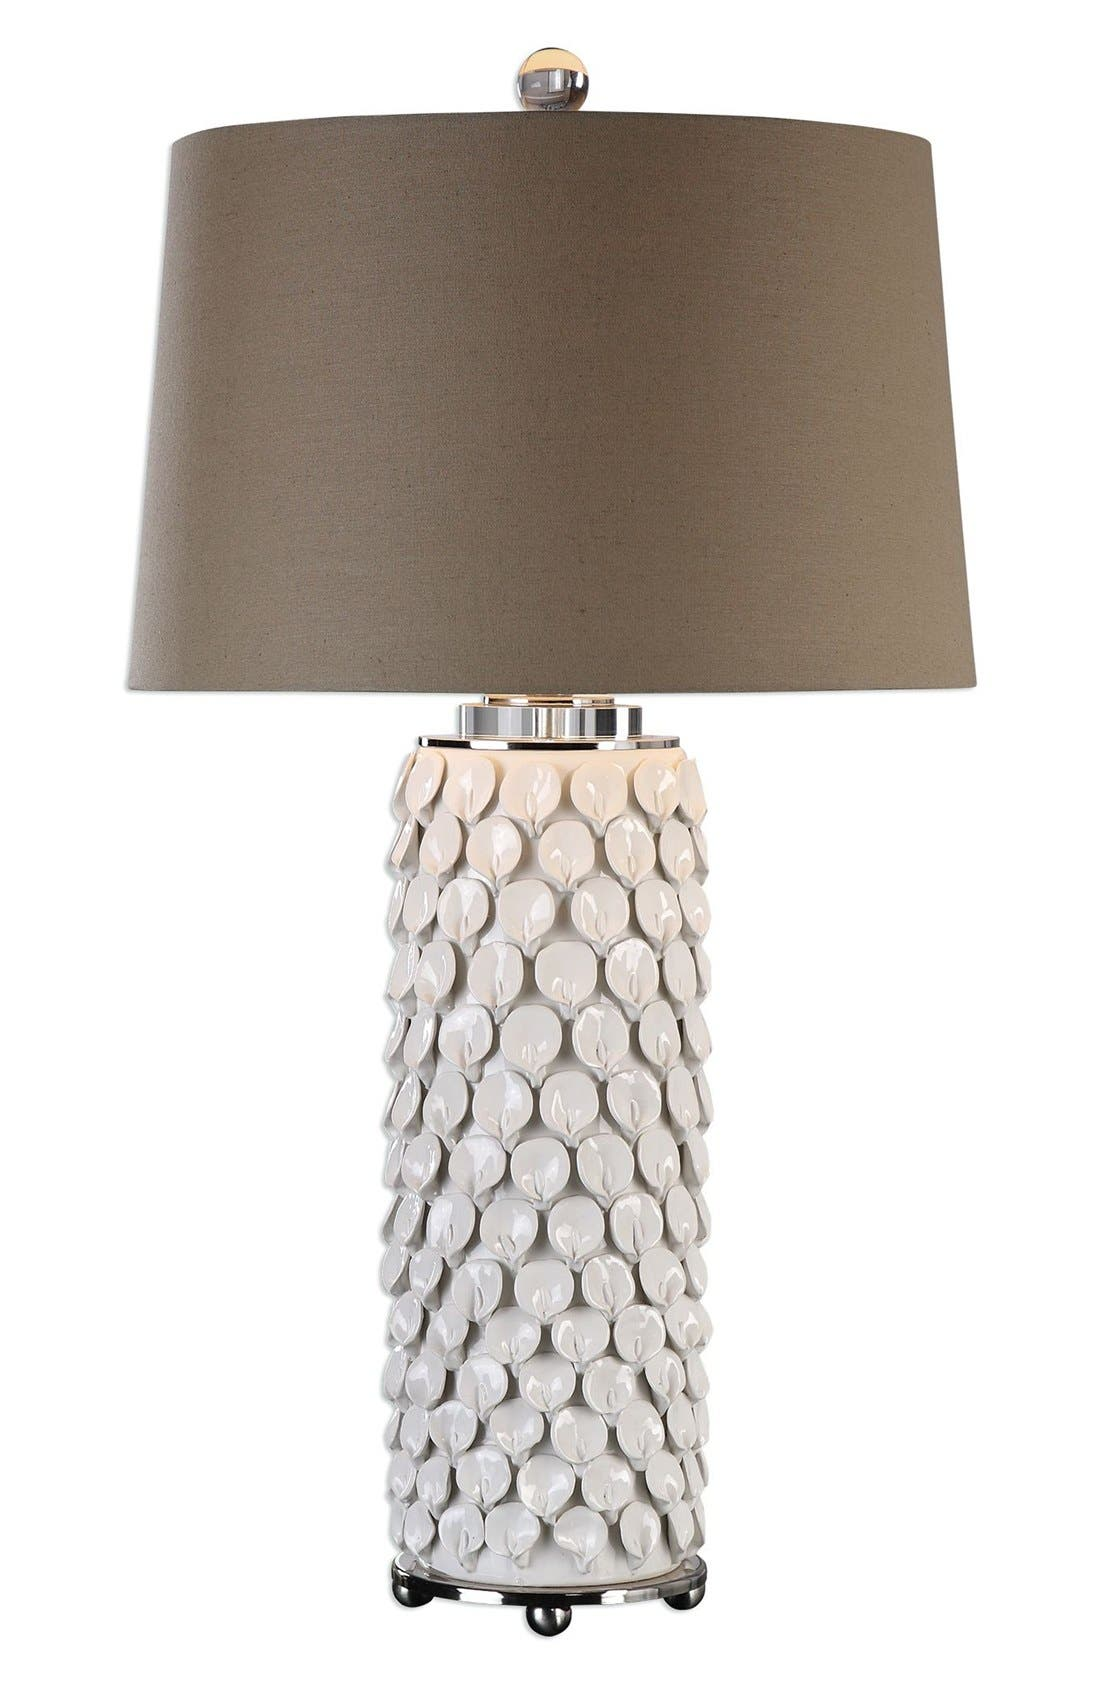 Uttermost 'Lily' Glossy Ceramic Table Lamp